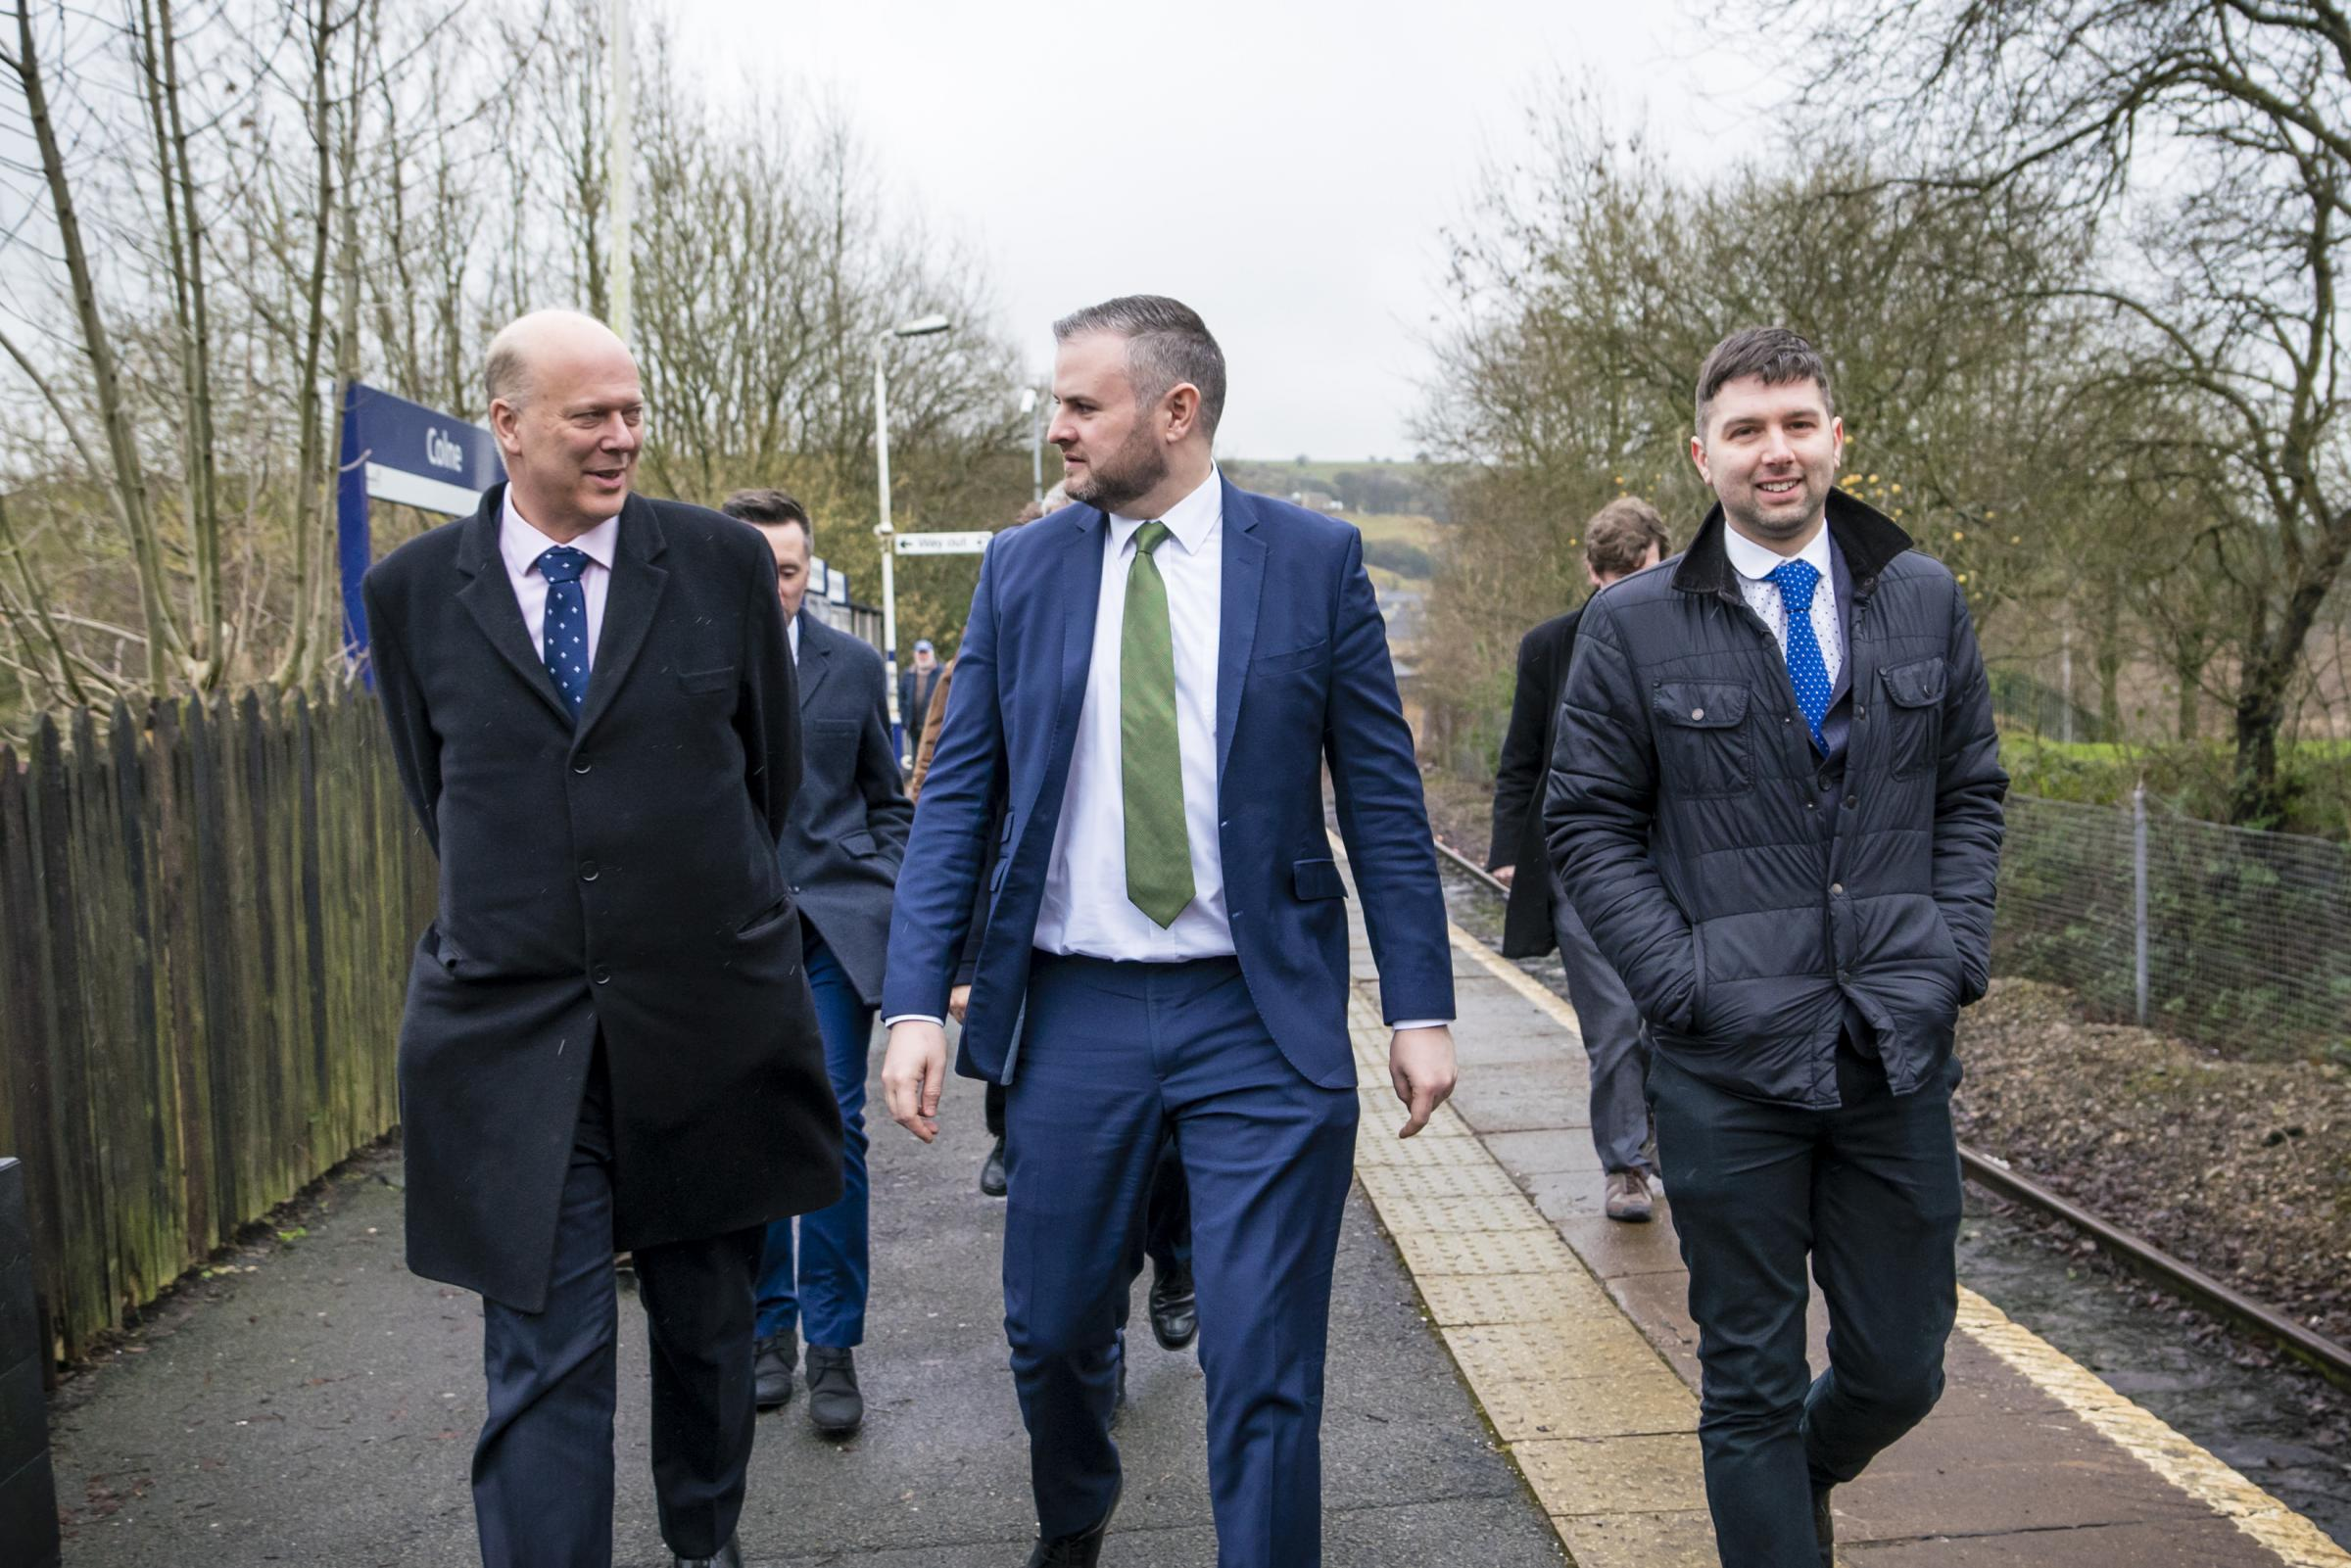 Chris Grayling (left) with Pendle MP Andrew Stephenson (centre) and Colne Town Councillor Ash Sutcliffe  on Colne railway station